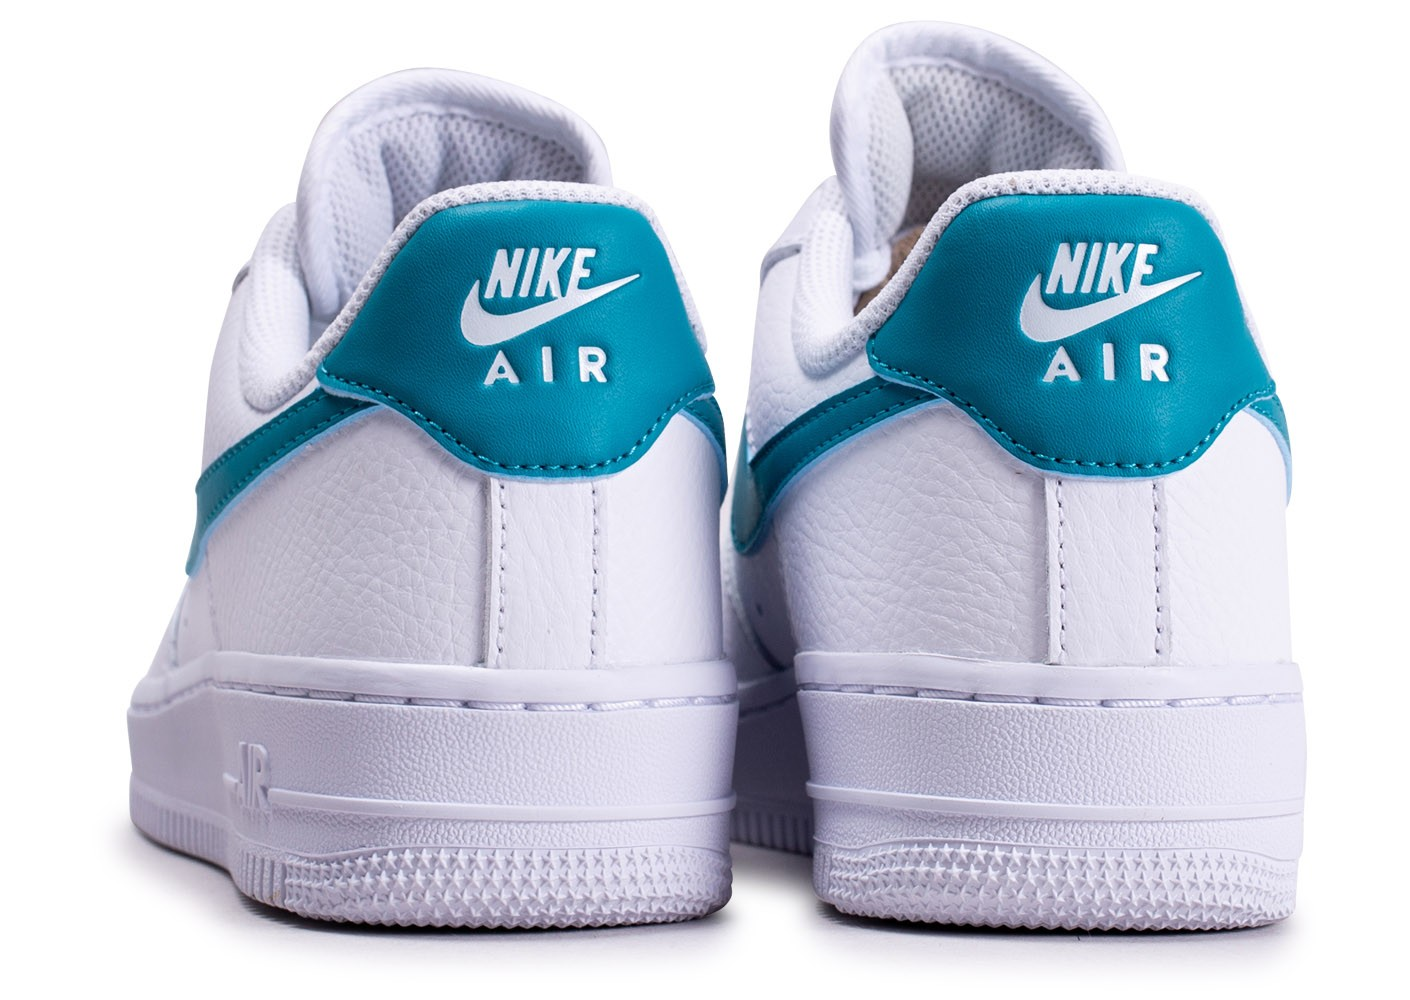 Nike Air Force 1'07 blanche bleue or femme - Chaussures Baskets ...